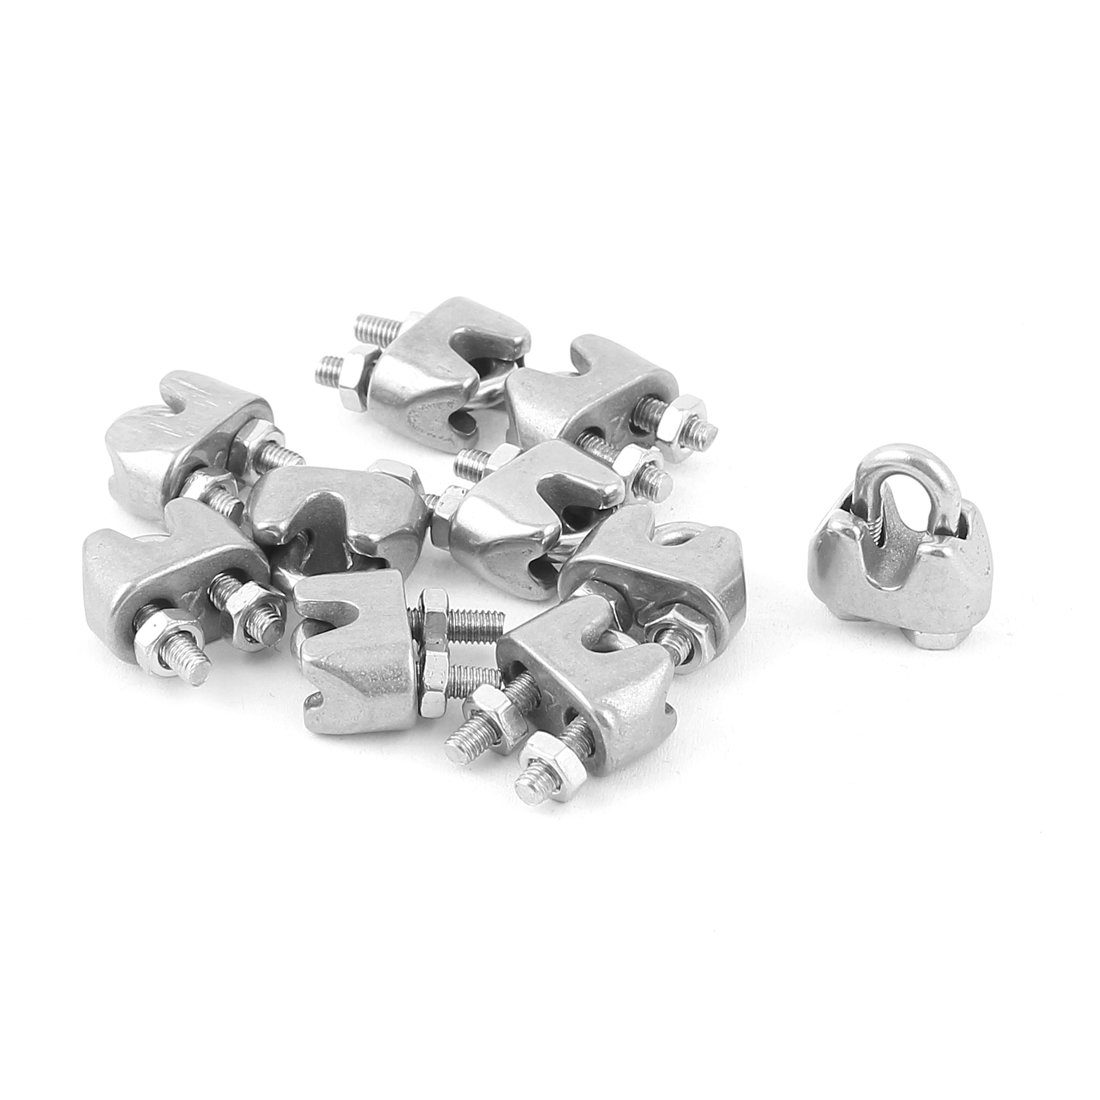 Cable Clamps 3mm or 1//8 inch Stainless Steel package of 8